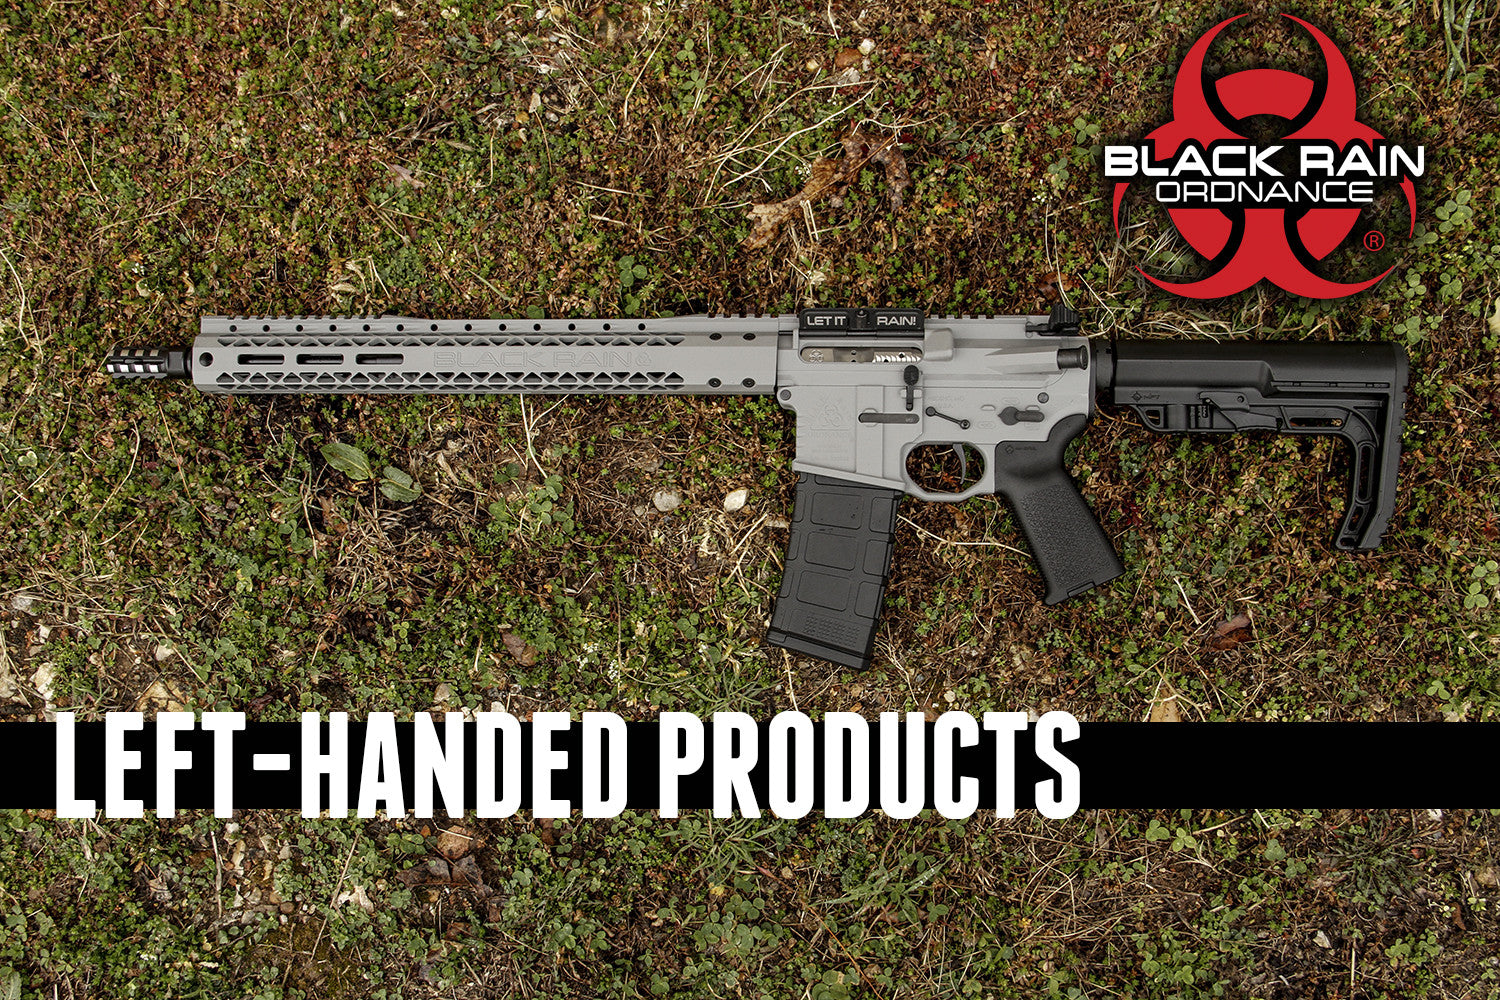 BLACK RAIN ORDNANCE INTRODUCES LEFT HANDED PRODUCTS!